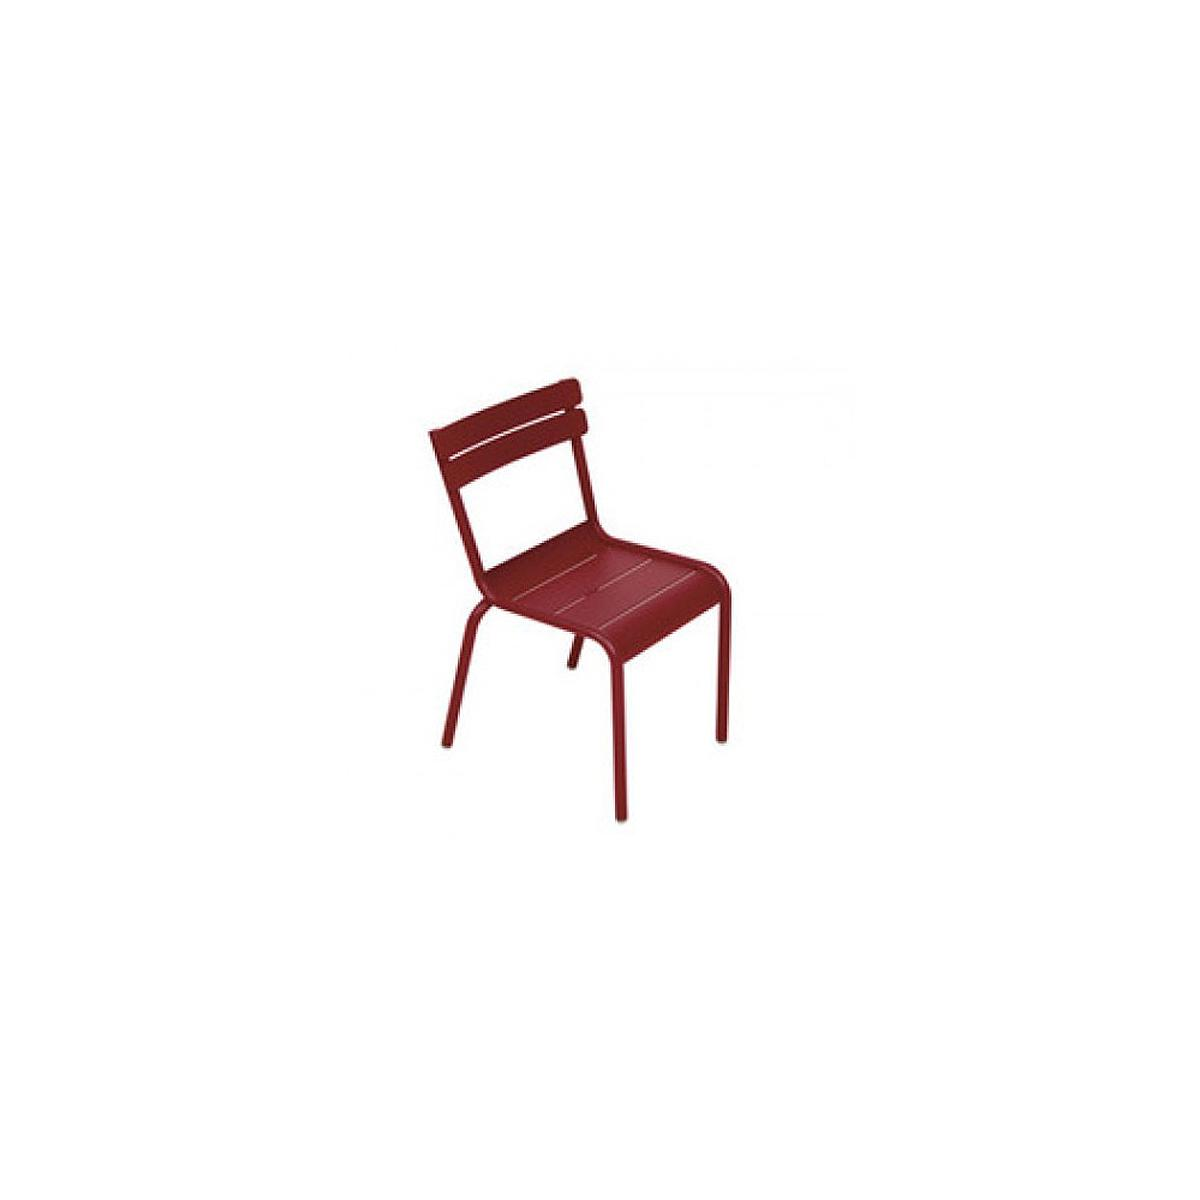 LUXEMBOURG KID by Fermob Chaise rouge piment